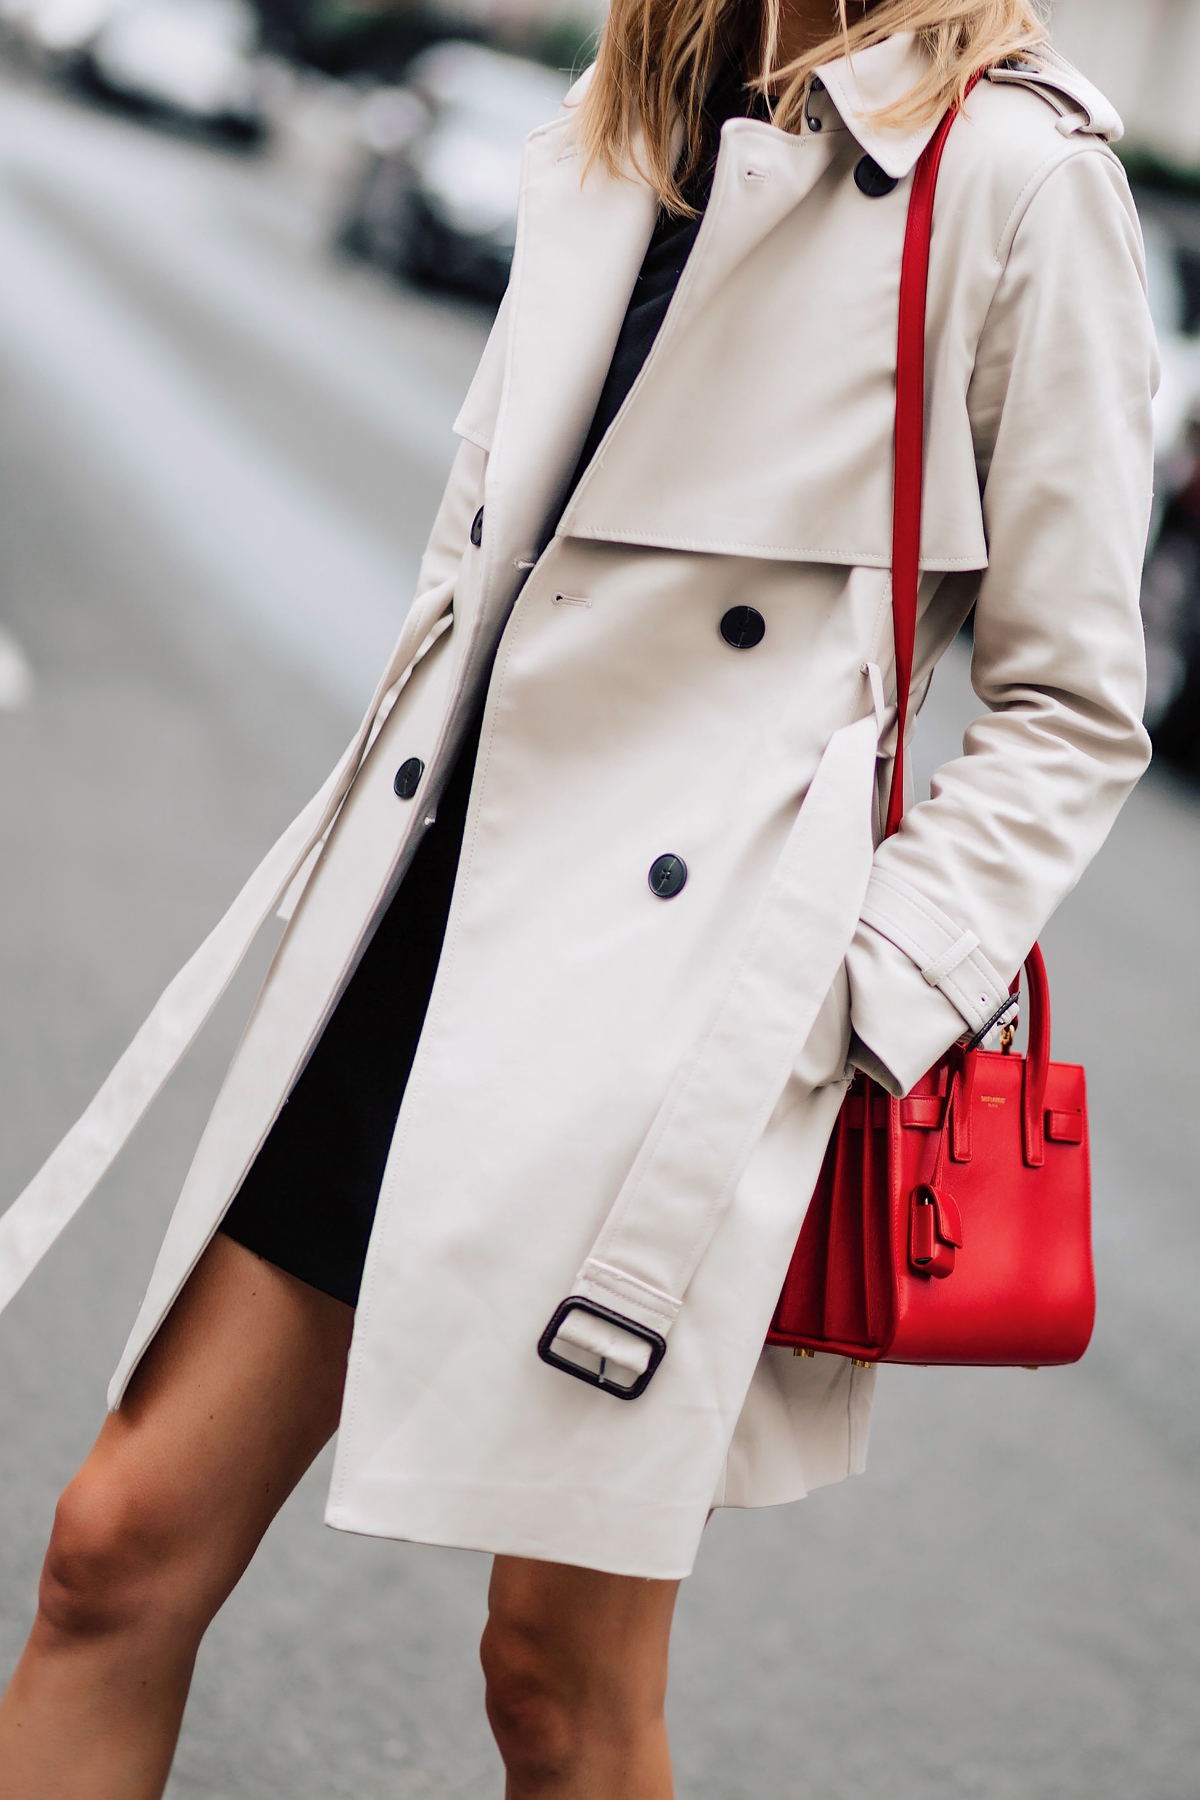 Woman Wearing Club Monaco Trench Coat Black Dress Outfit Red YSL Sac De Jour Handbag Fashion Jackson San Diego Fashion Blogger London Street Style